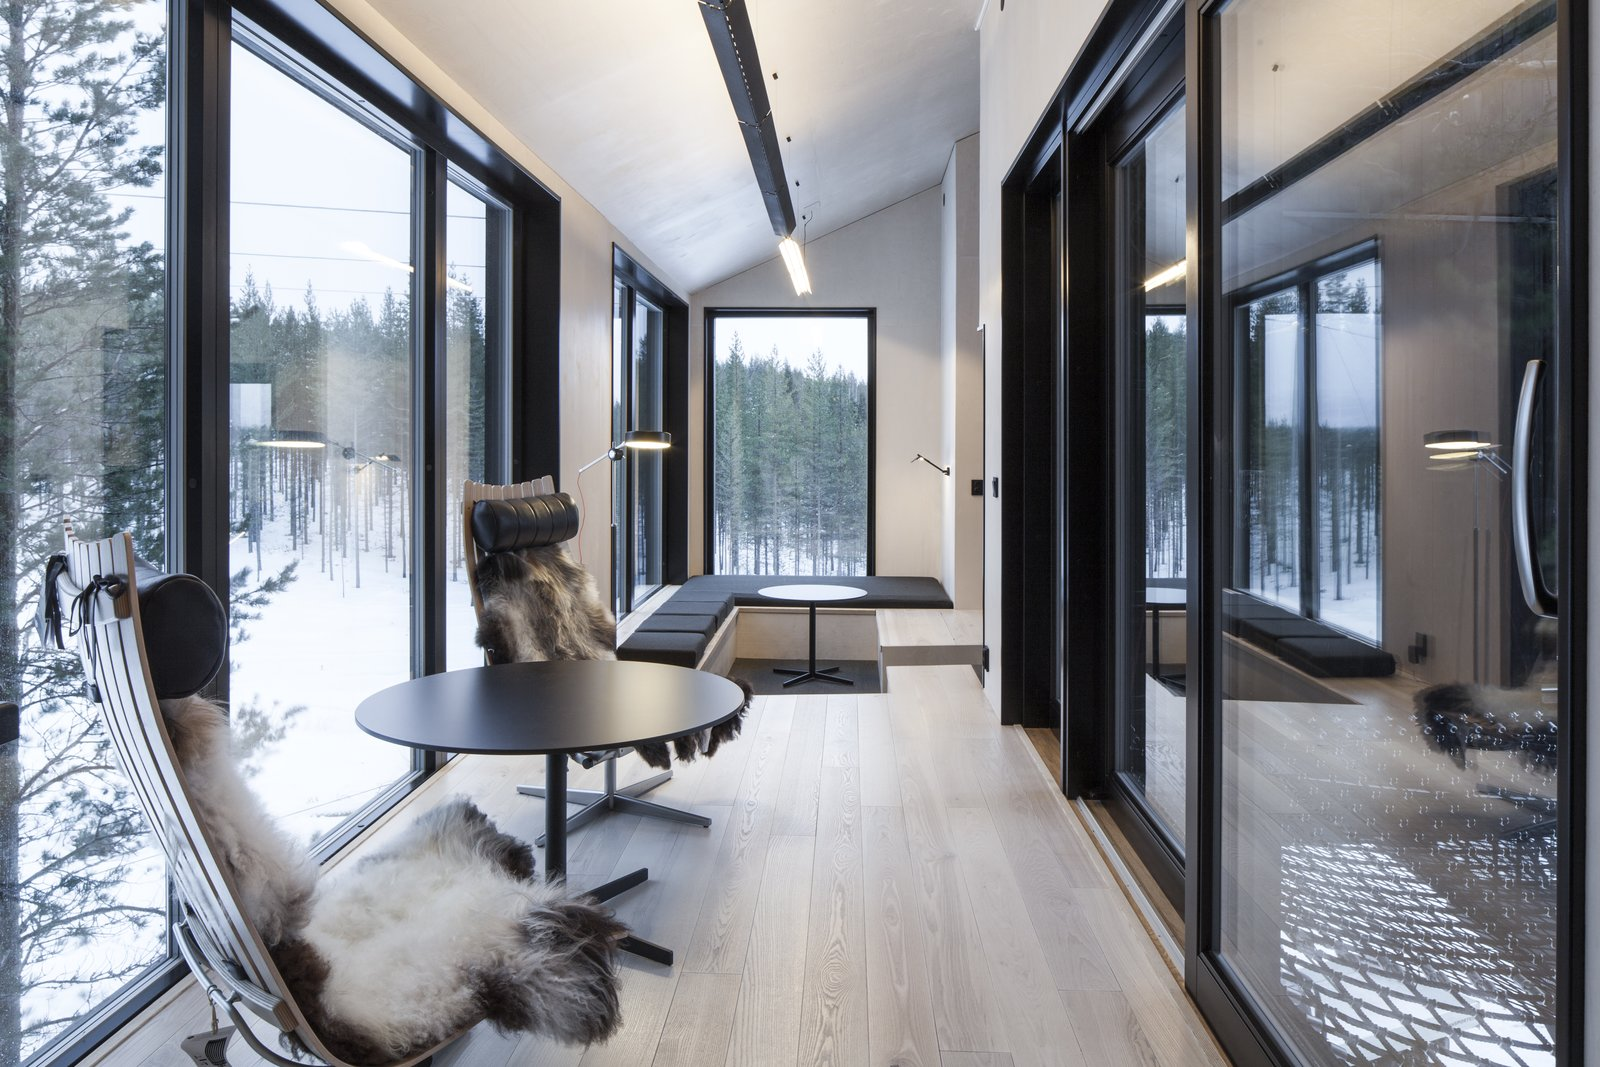 Light ash flooring and birch plywood walls create a light interior that contrasts the dark, charred exterior wood. Here in the lounge space, simple furniture such as the Scandia Chair by Hans Brattrud and a central pellet stove create a calm, inviting environment. A floor-to-ceiling window, facing north, is your best bet for seeing the Aurora Borealis. Tagged: Living Room, Light Hardwood Floor, and Chair.  Photo 4 of 8 in Go Stargazing in Snøhetta's Towering Addition to Sweden's Treehotel